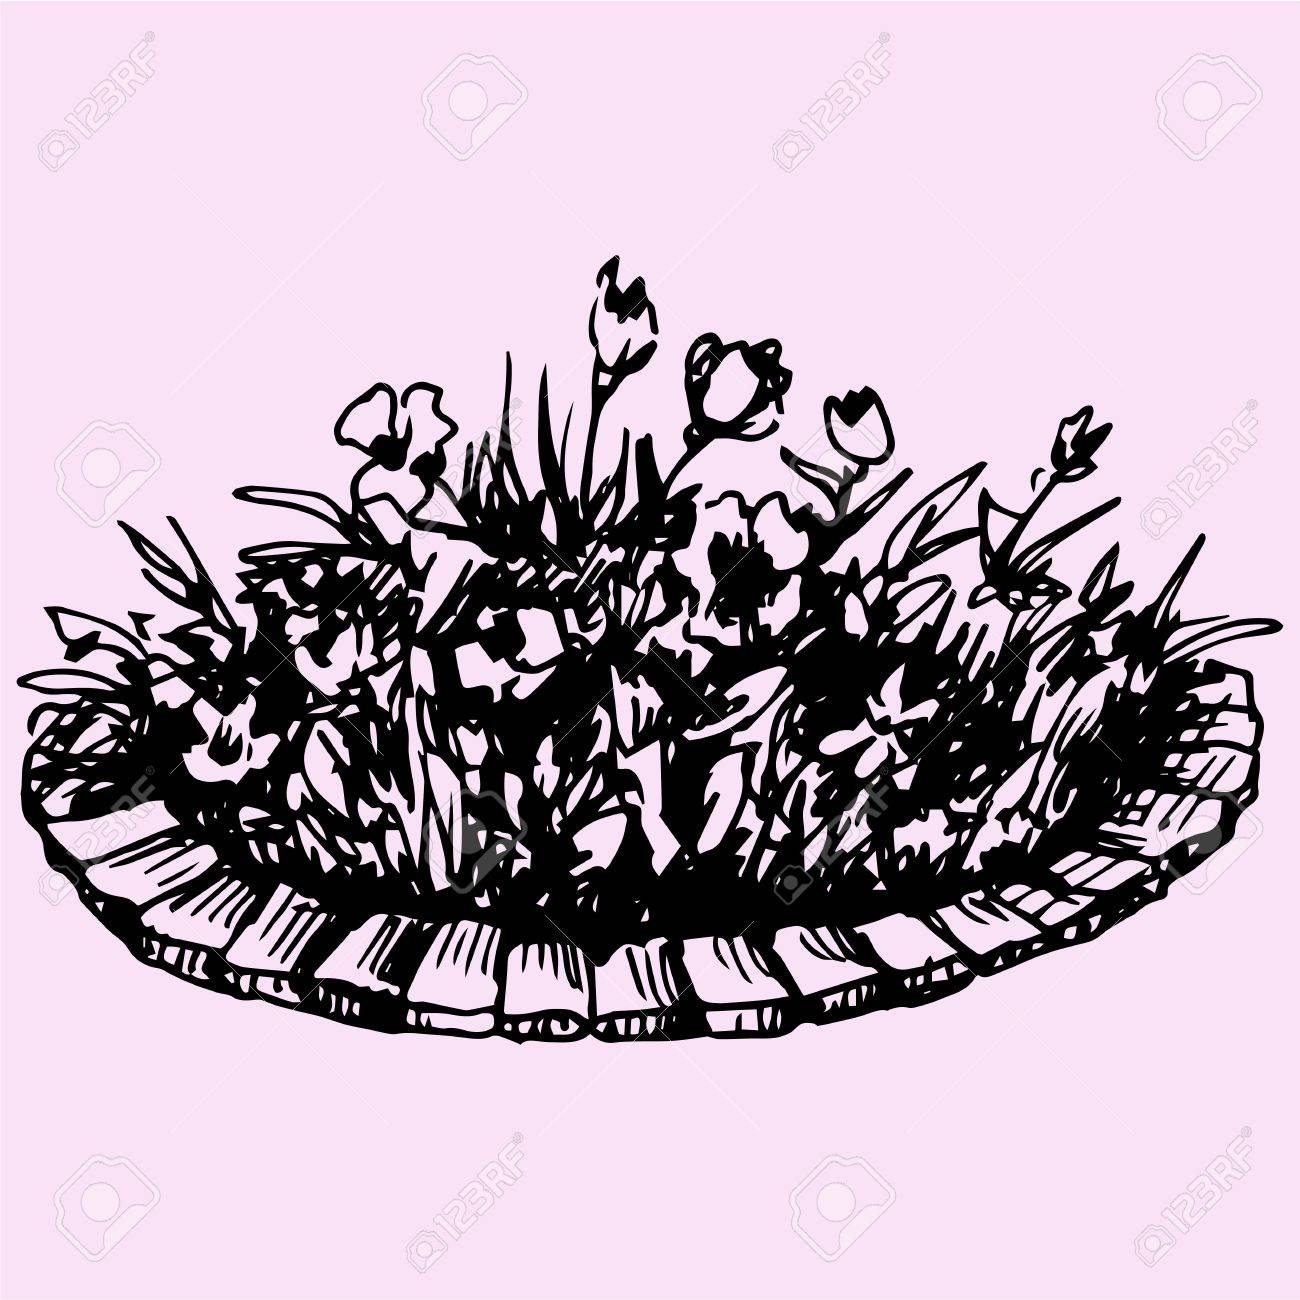 1300x1300 Flowers In Flowerbed Doodle Style Sketch Illustration Hand Drawn